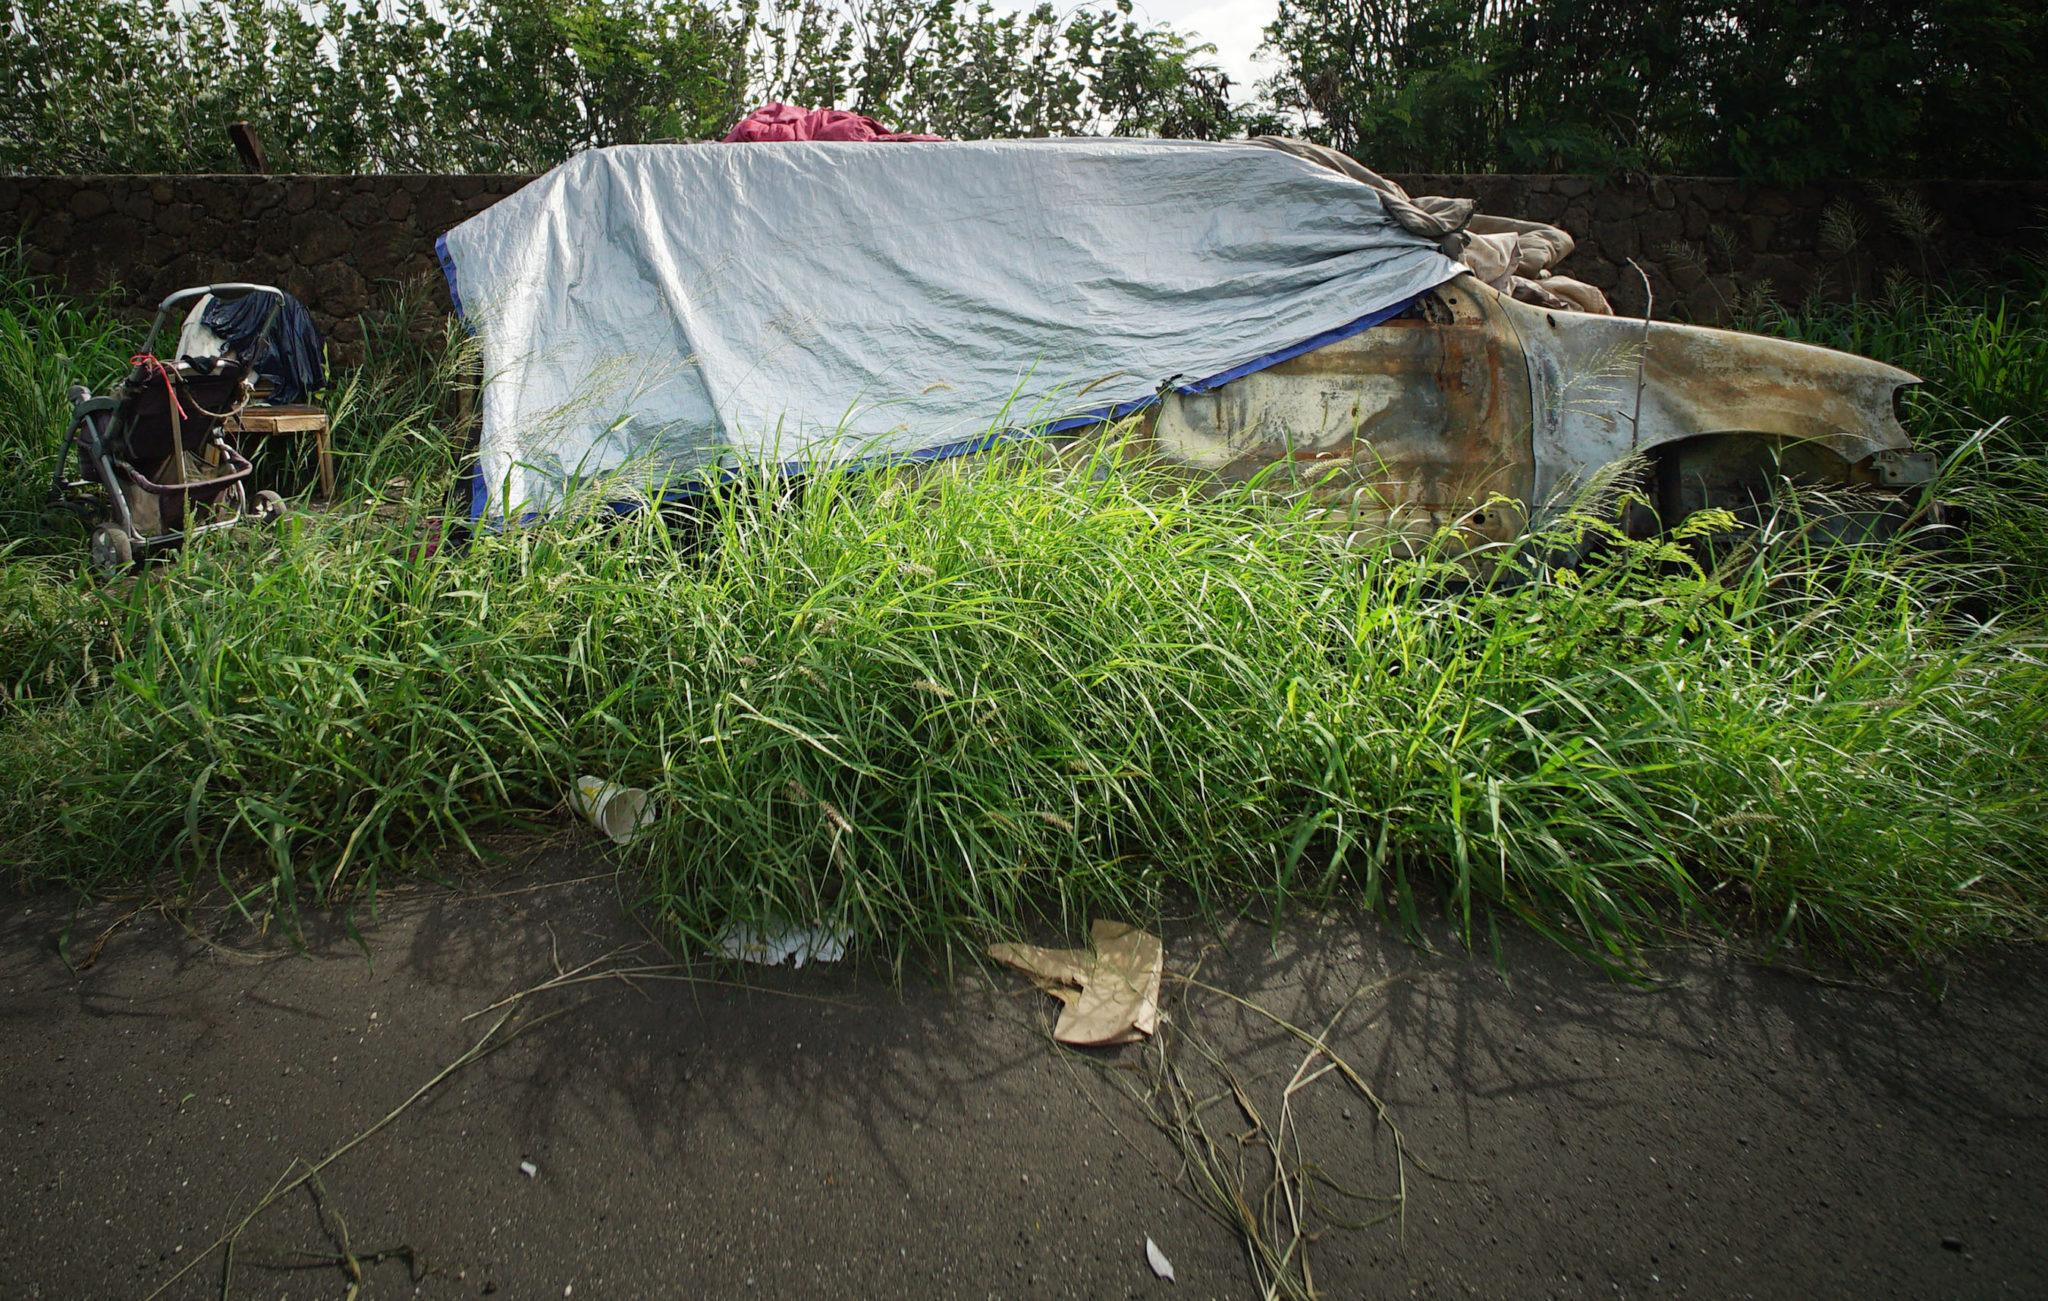 <p>With a tarp for a roof, this vehicle alongside Kaukamana Road in Waianae may be someone&#8217;s temporary shelter.</p>